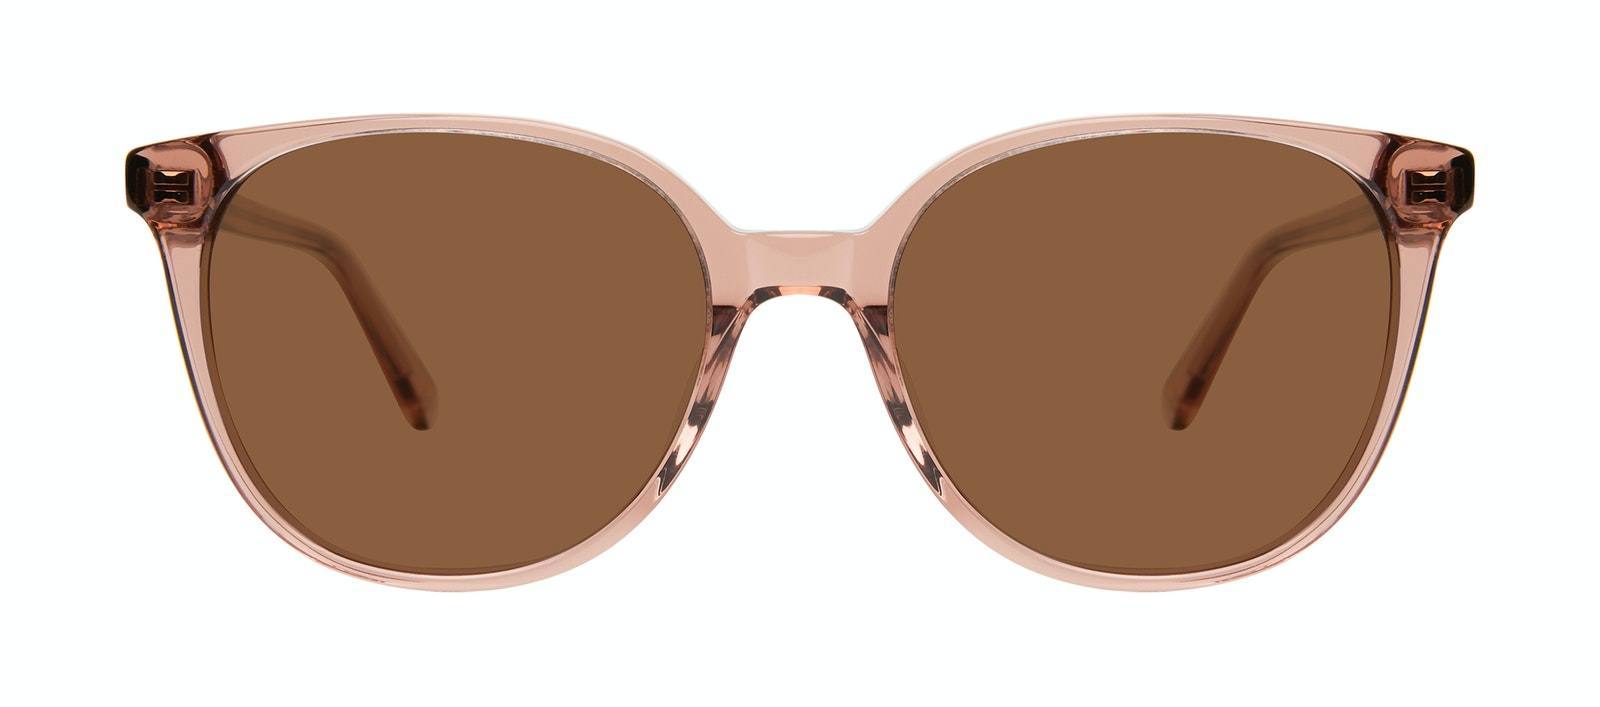 Affordable Fashion Glasses Square Sunglasses Women Novel Rose Front